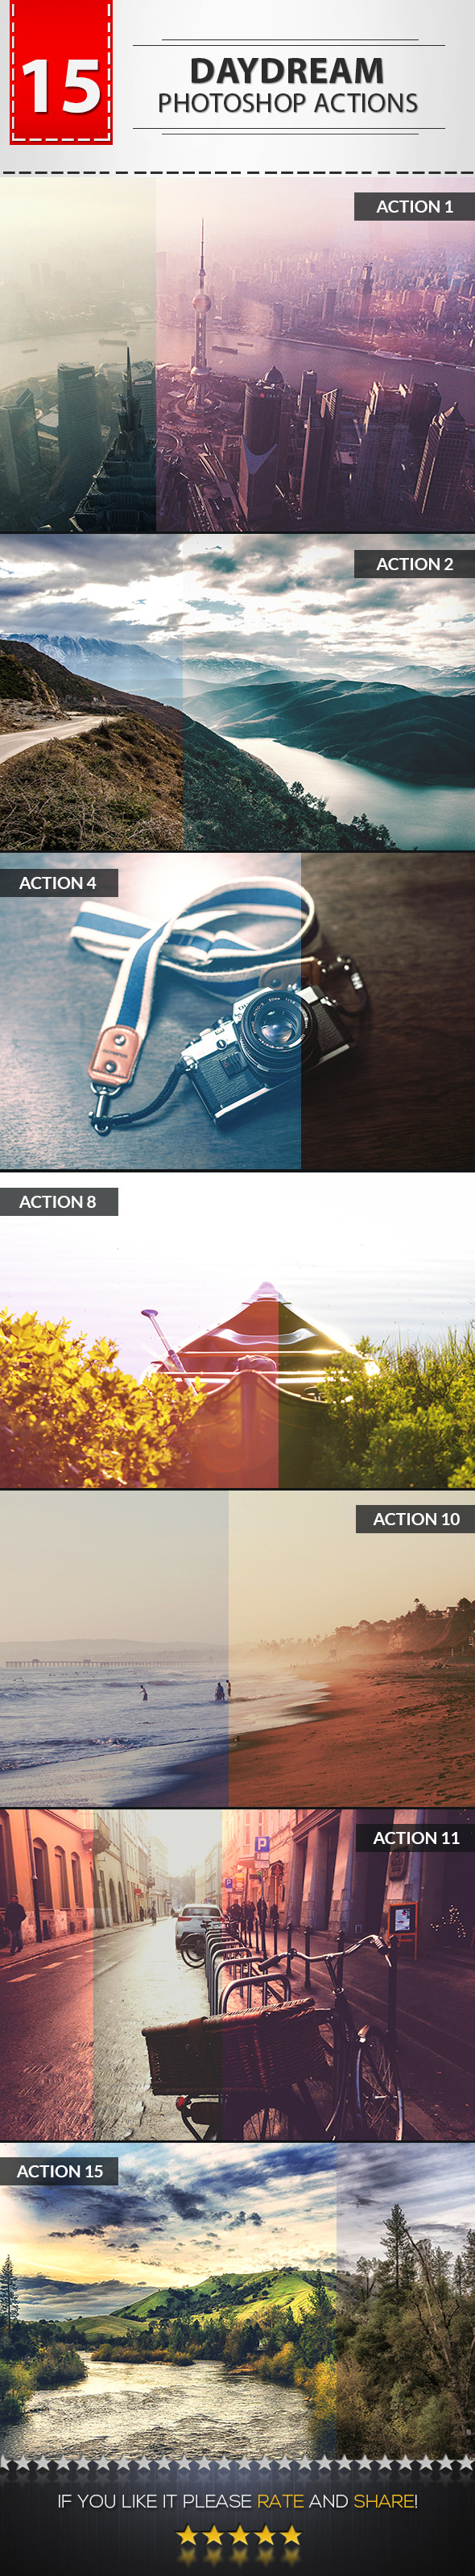 GraphicRiver 15 Daydream Photoshop Actions 9174959